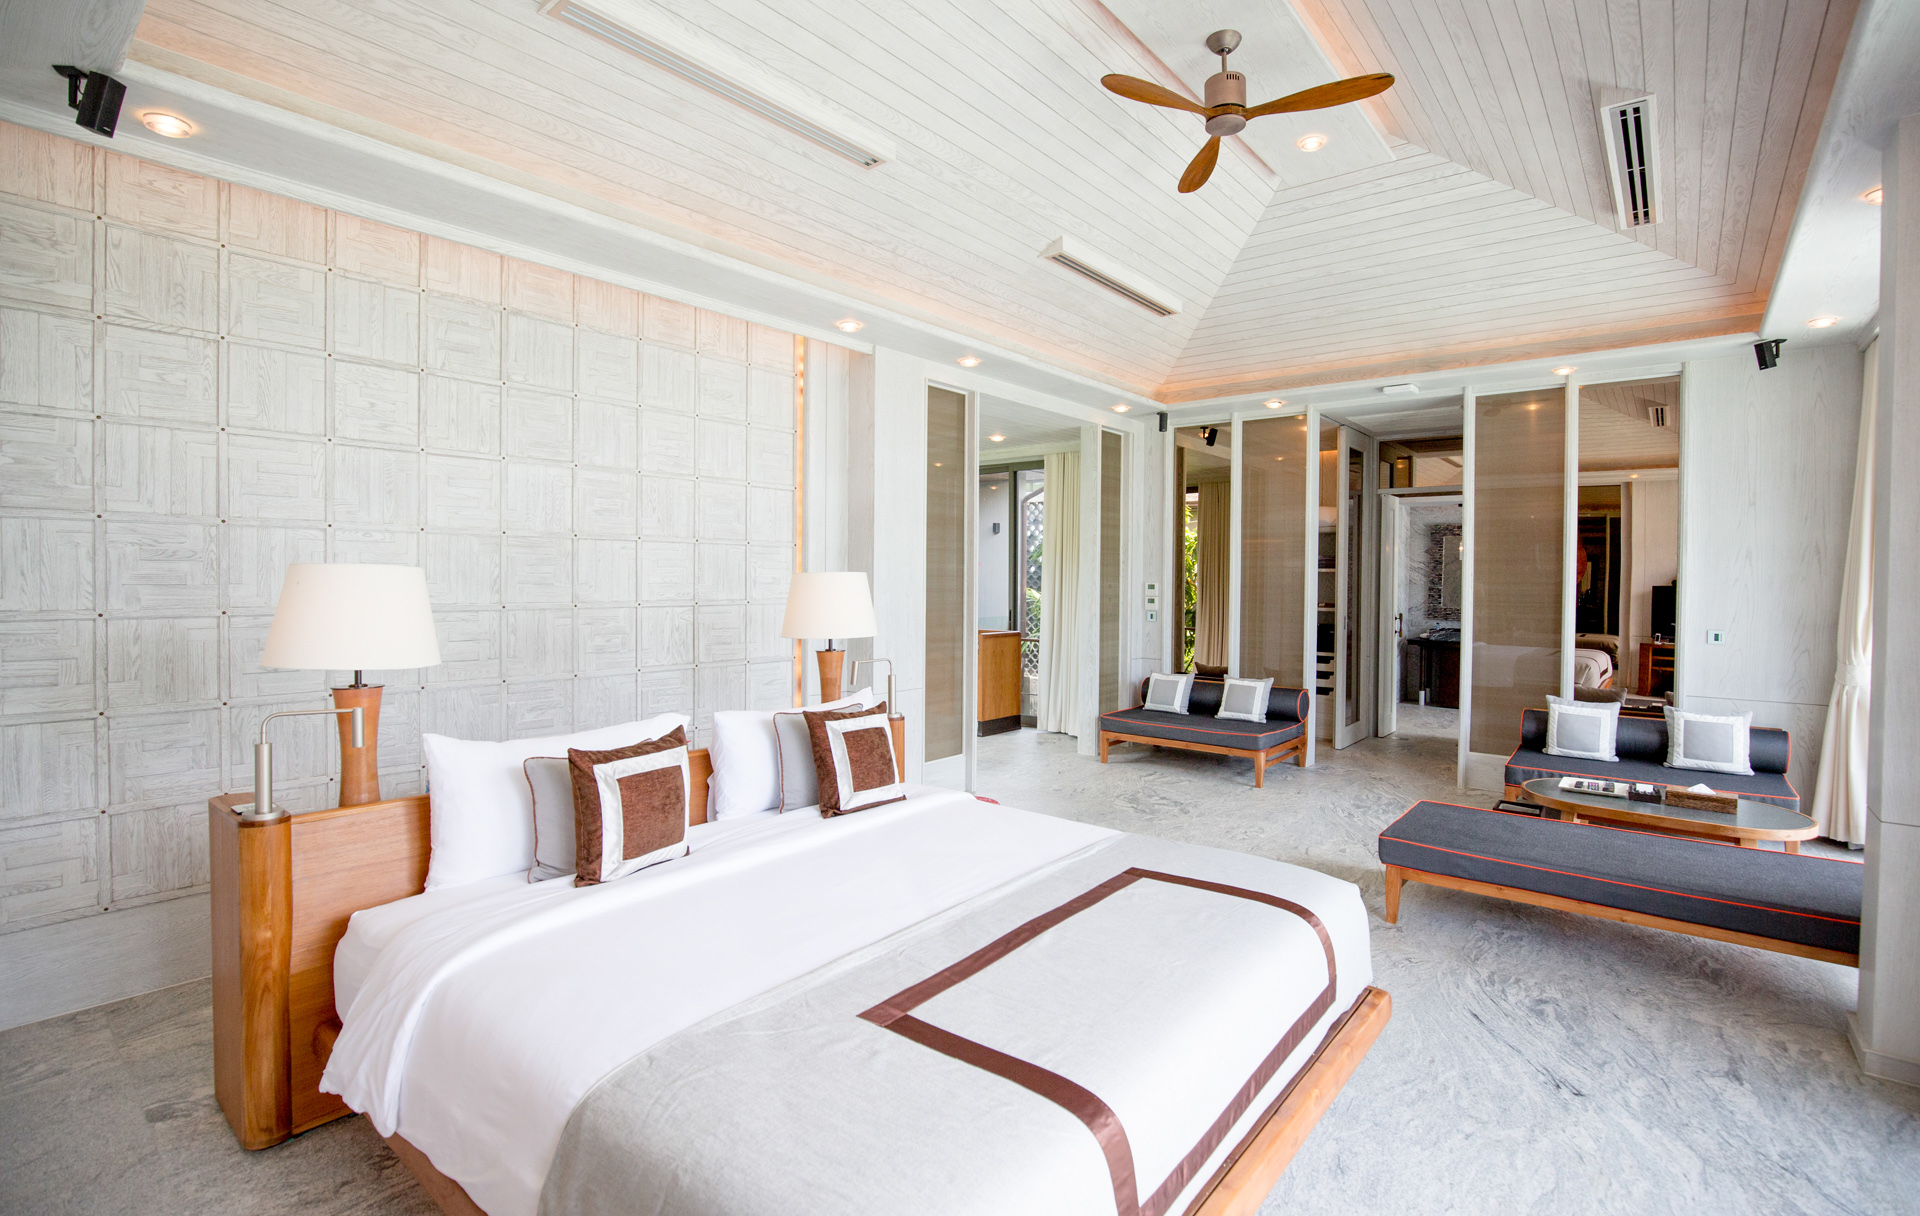 Baba Beach Club Phuket - Beachfront Pool Villa Hotel